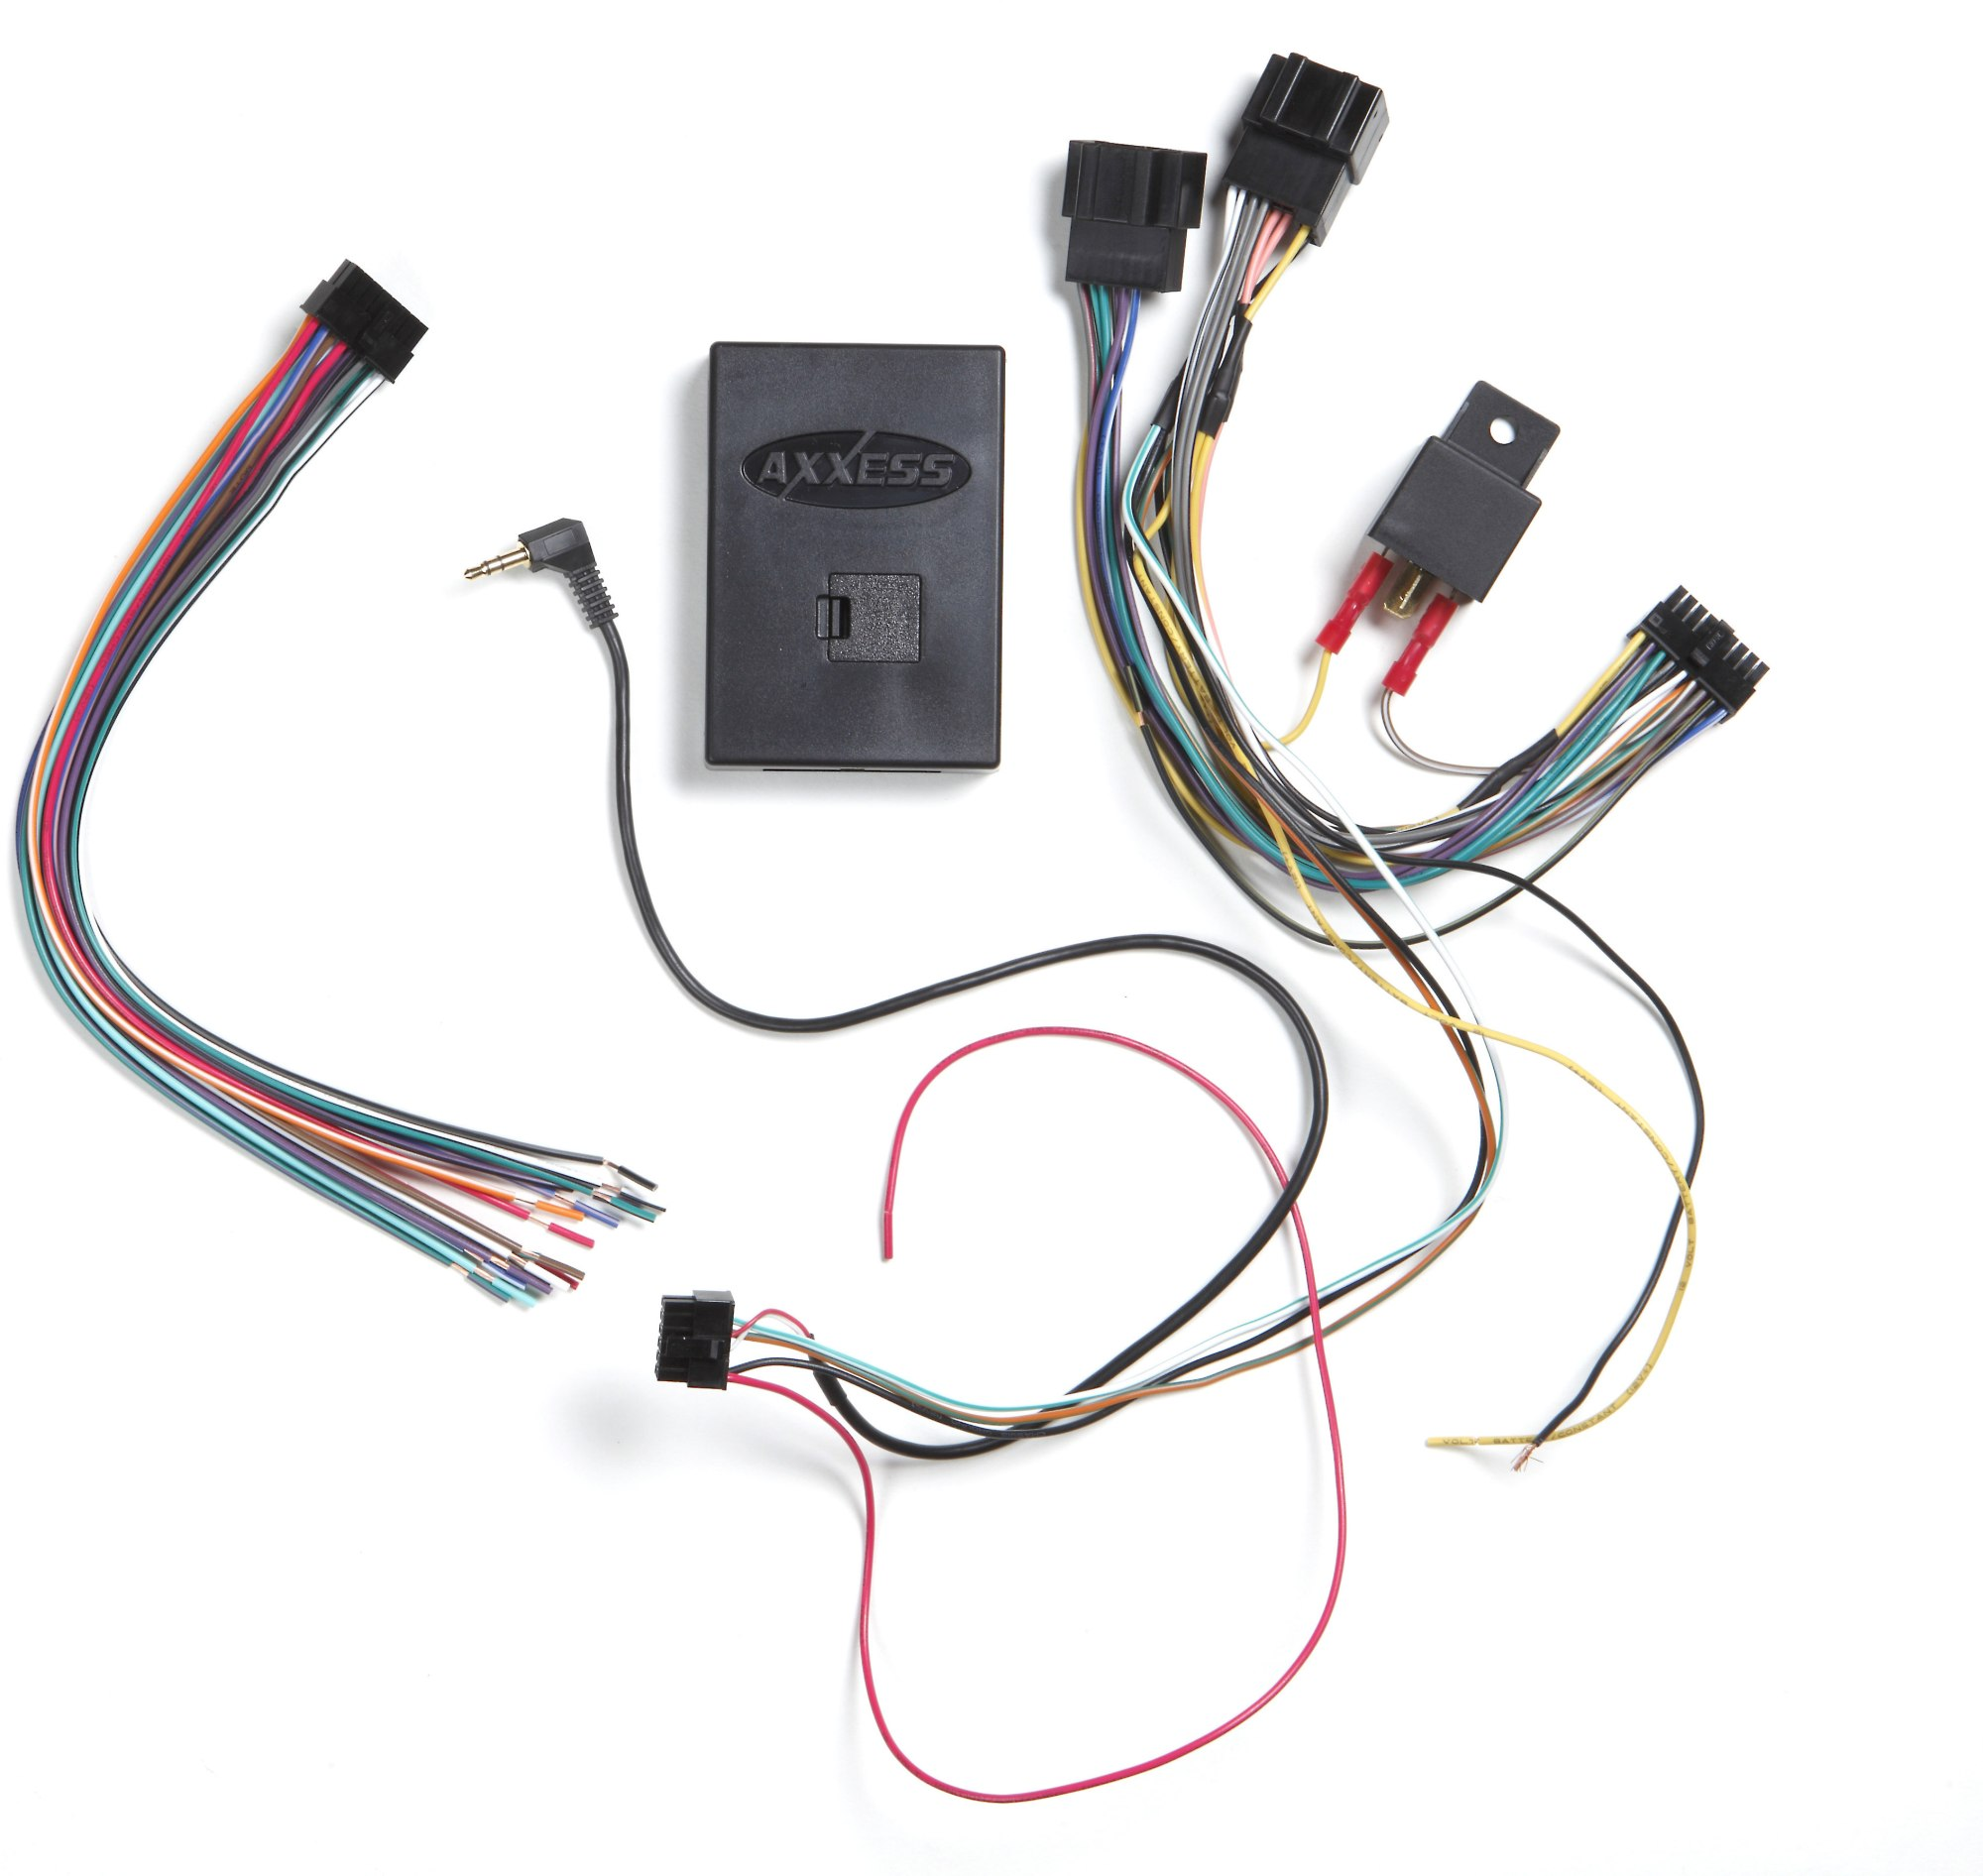 hight resolution of axxess gmos lan 04 wiring interface connect a new car stereo and retain onstar safety warning chimes and factory amplifier in select 2006 up gm vehicles